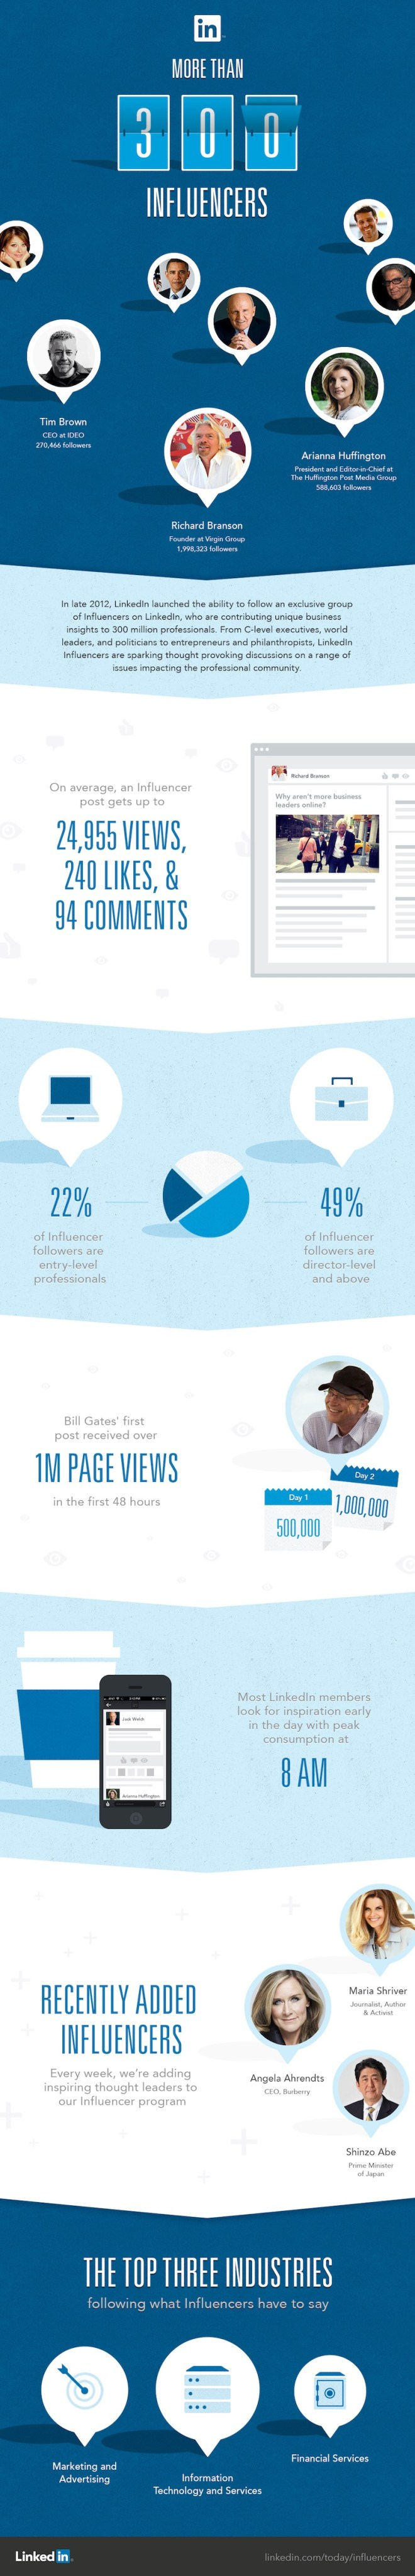 300-LinkedIn-Influencers-Infographic